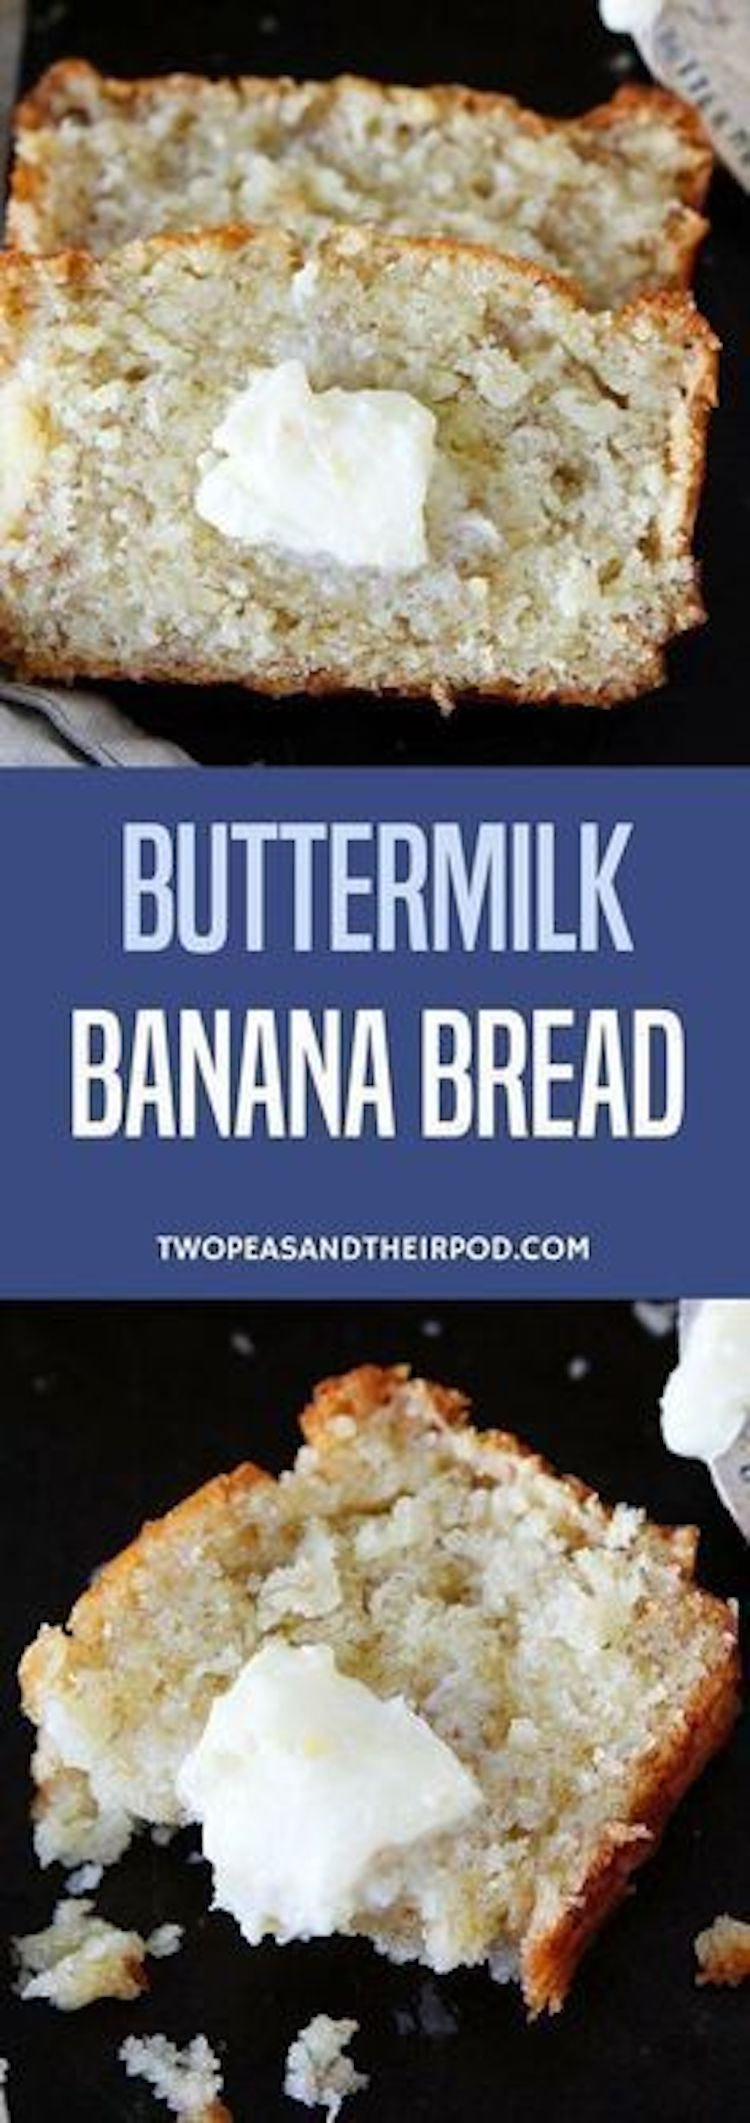 Banana Bread Recipe 02